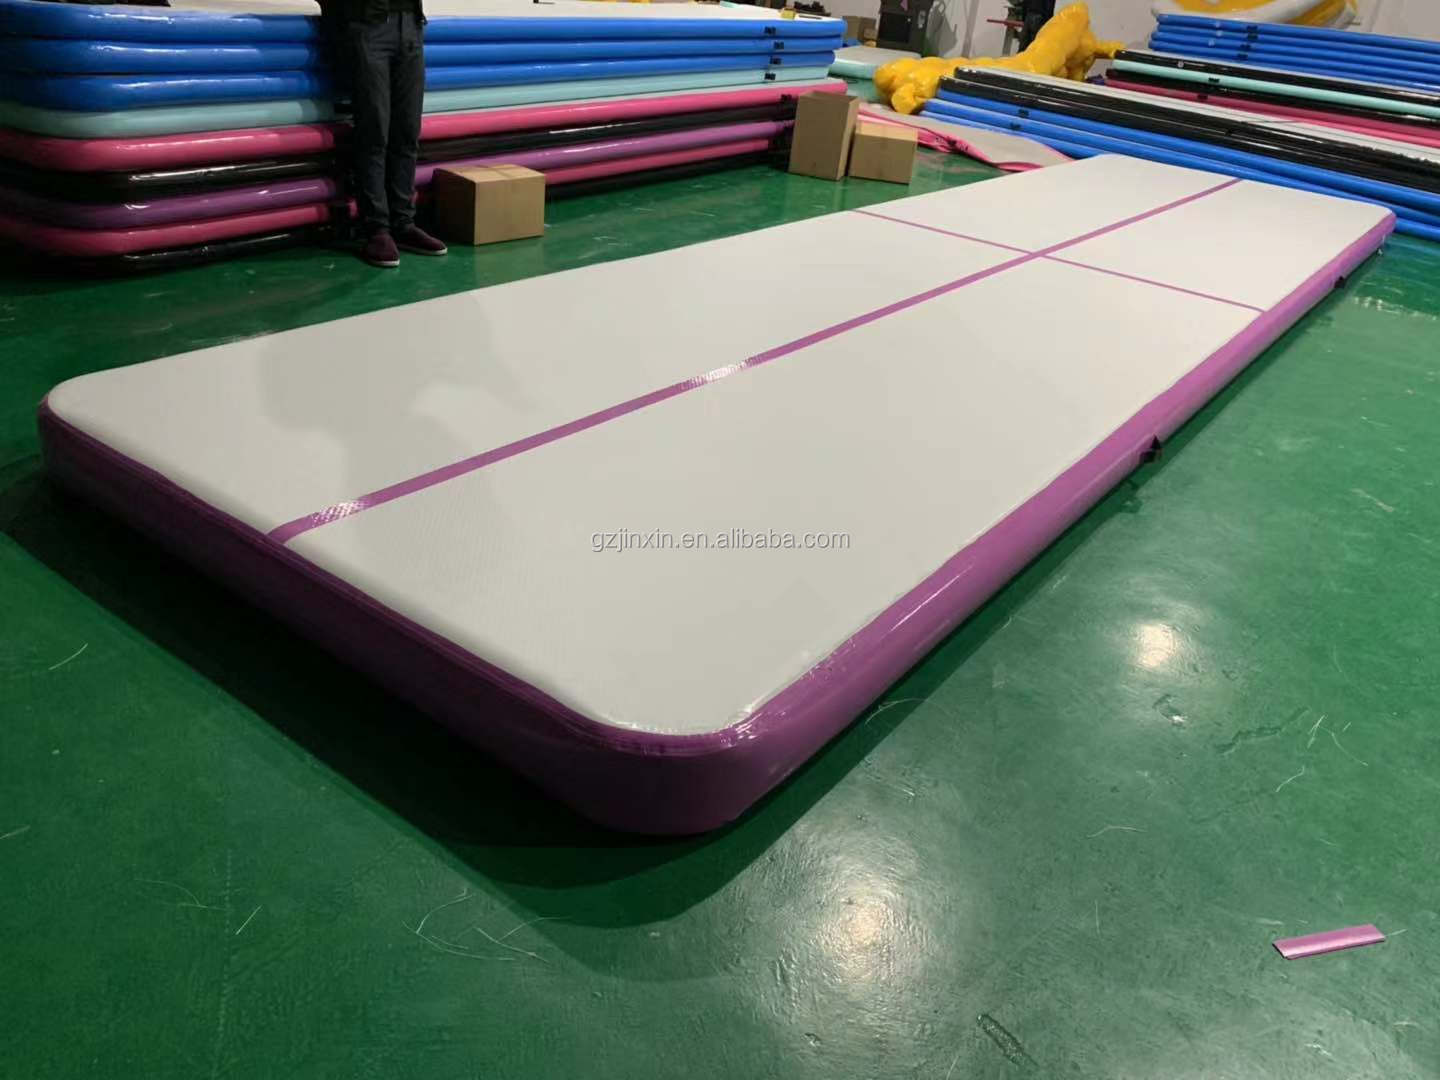 Gymnastics Training Set Inflatable Crash Airtrack Spring Board Roller Mat DWF Inflatable Mattress Sport Air Track 3m